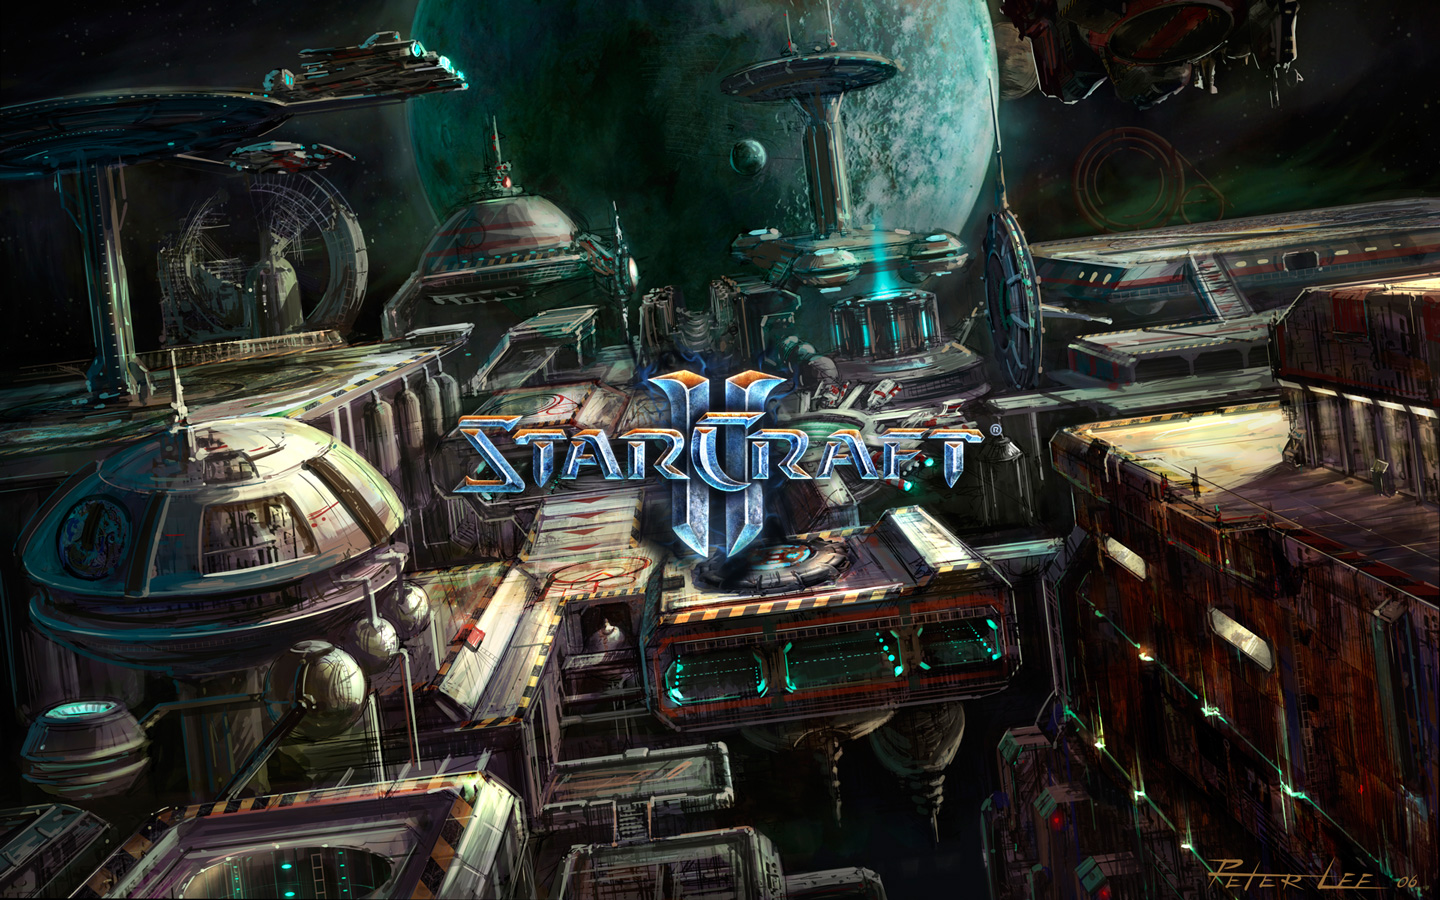 Free Starcraft 2 Wallpaper in 1440x900